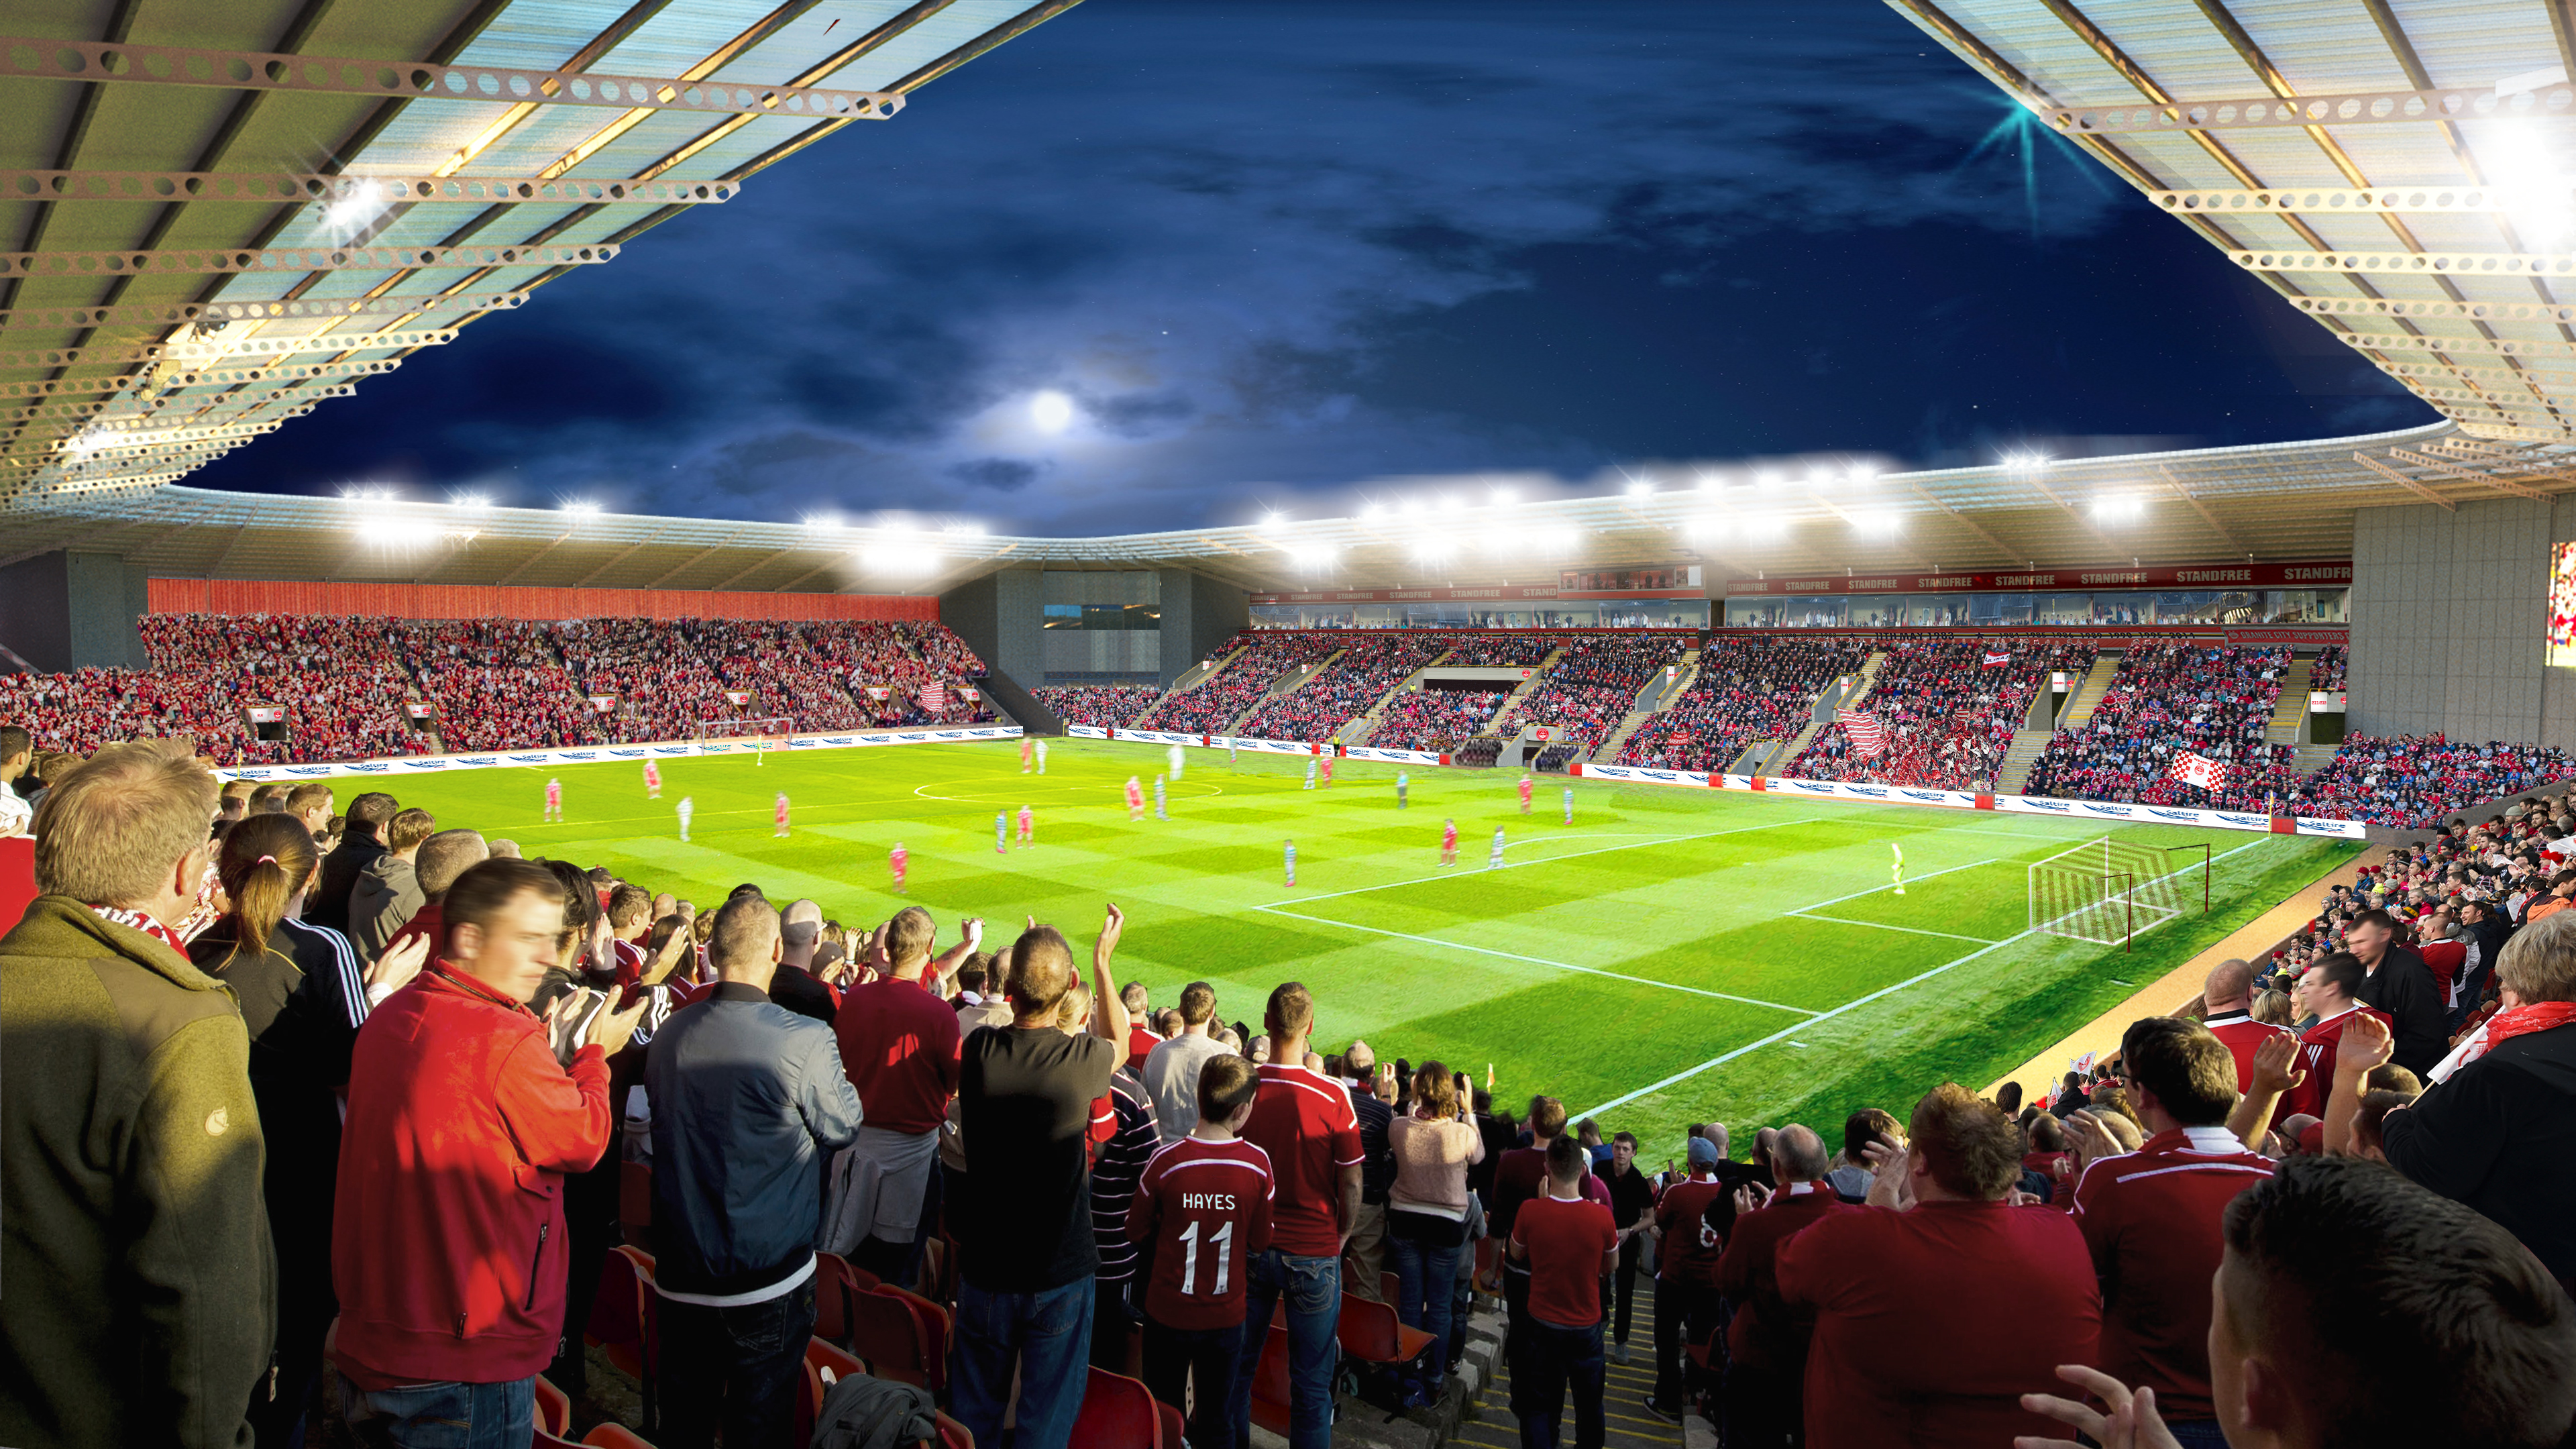 FIXTURES: How the inside of the stadium could look during an evening match.